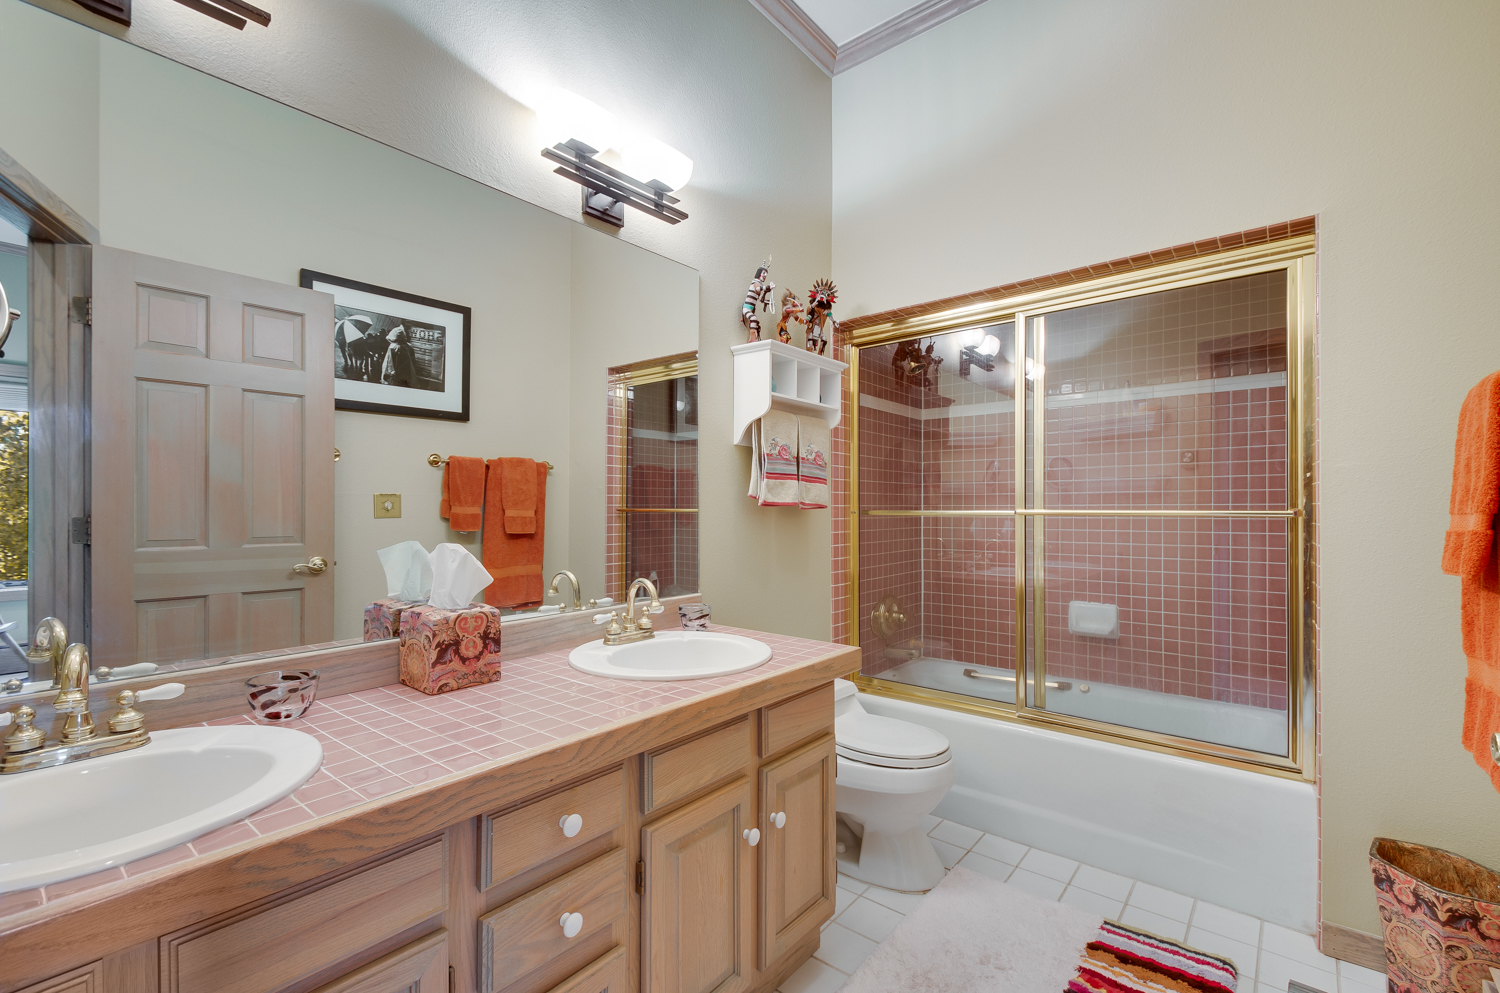 Master bathroom with tub and double vanity